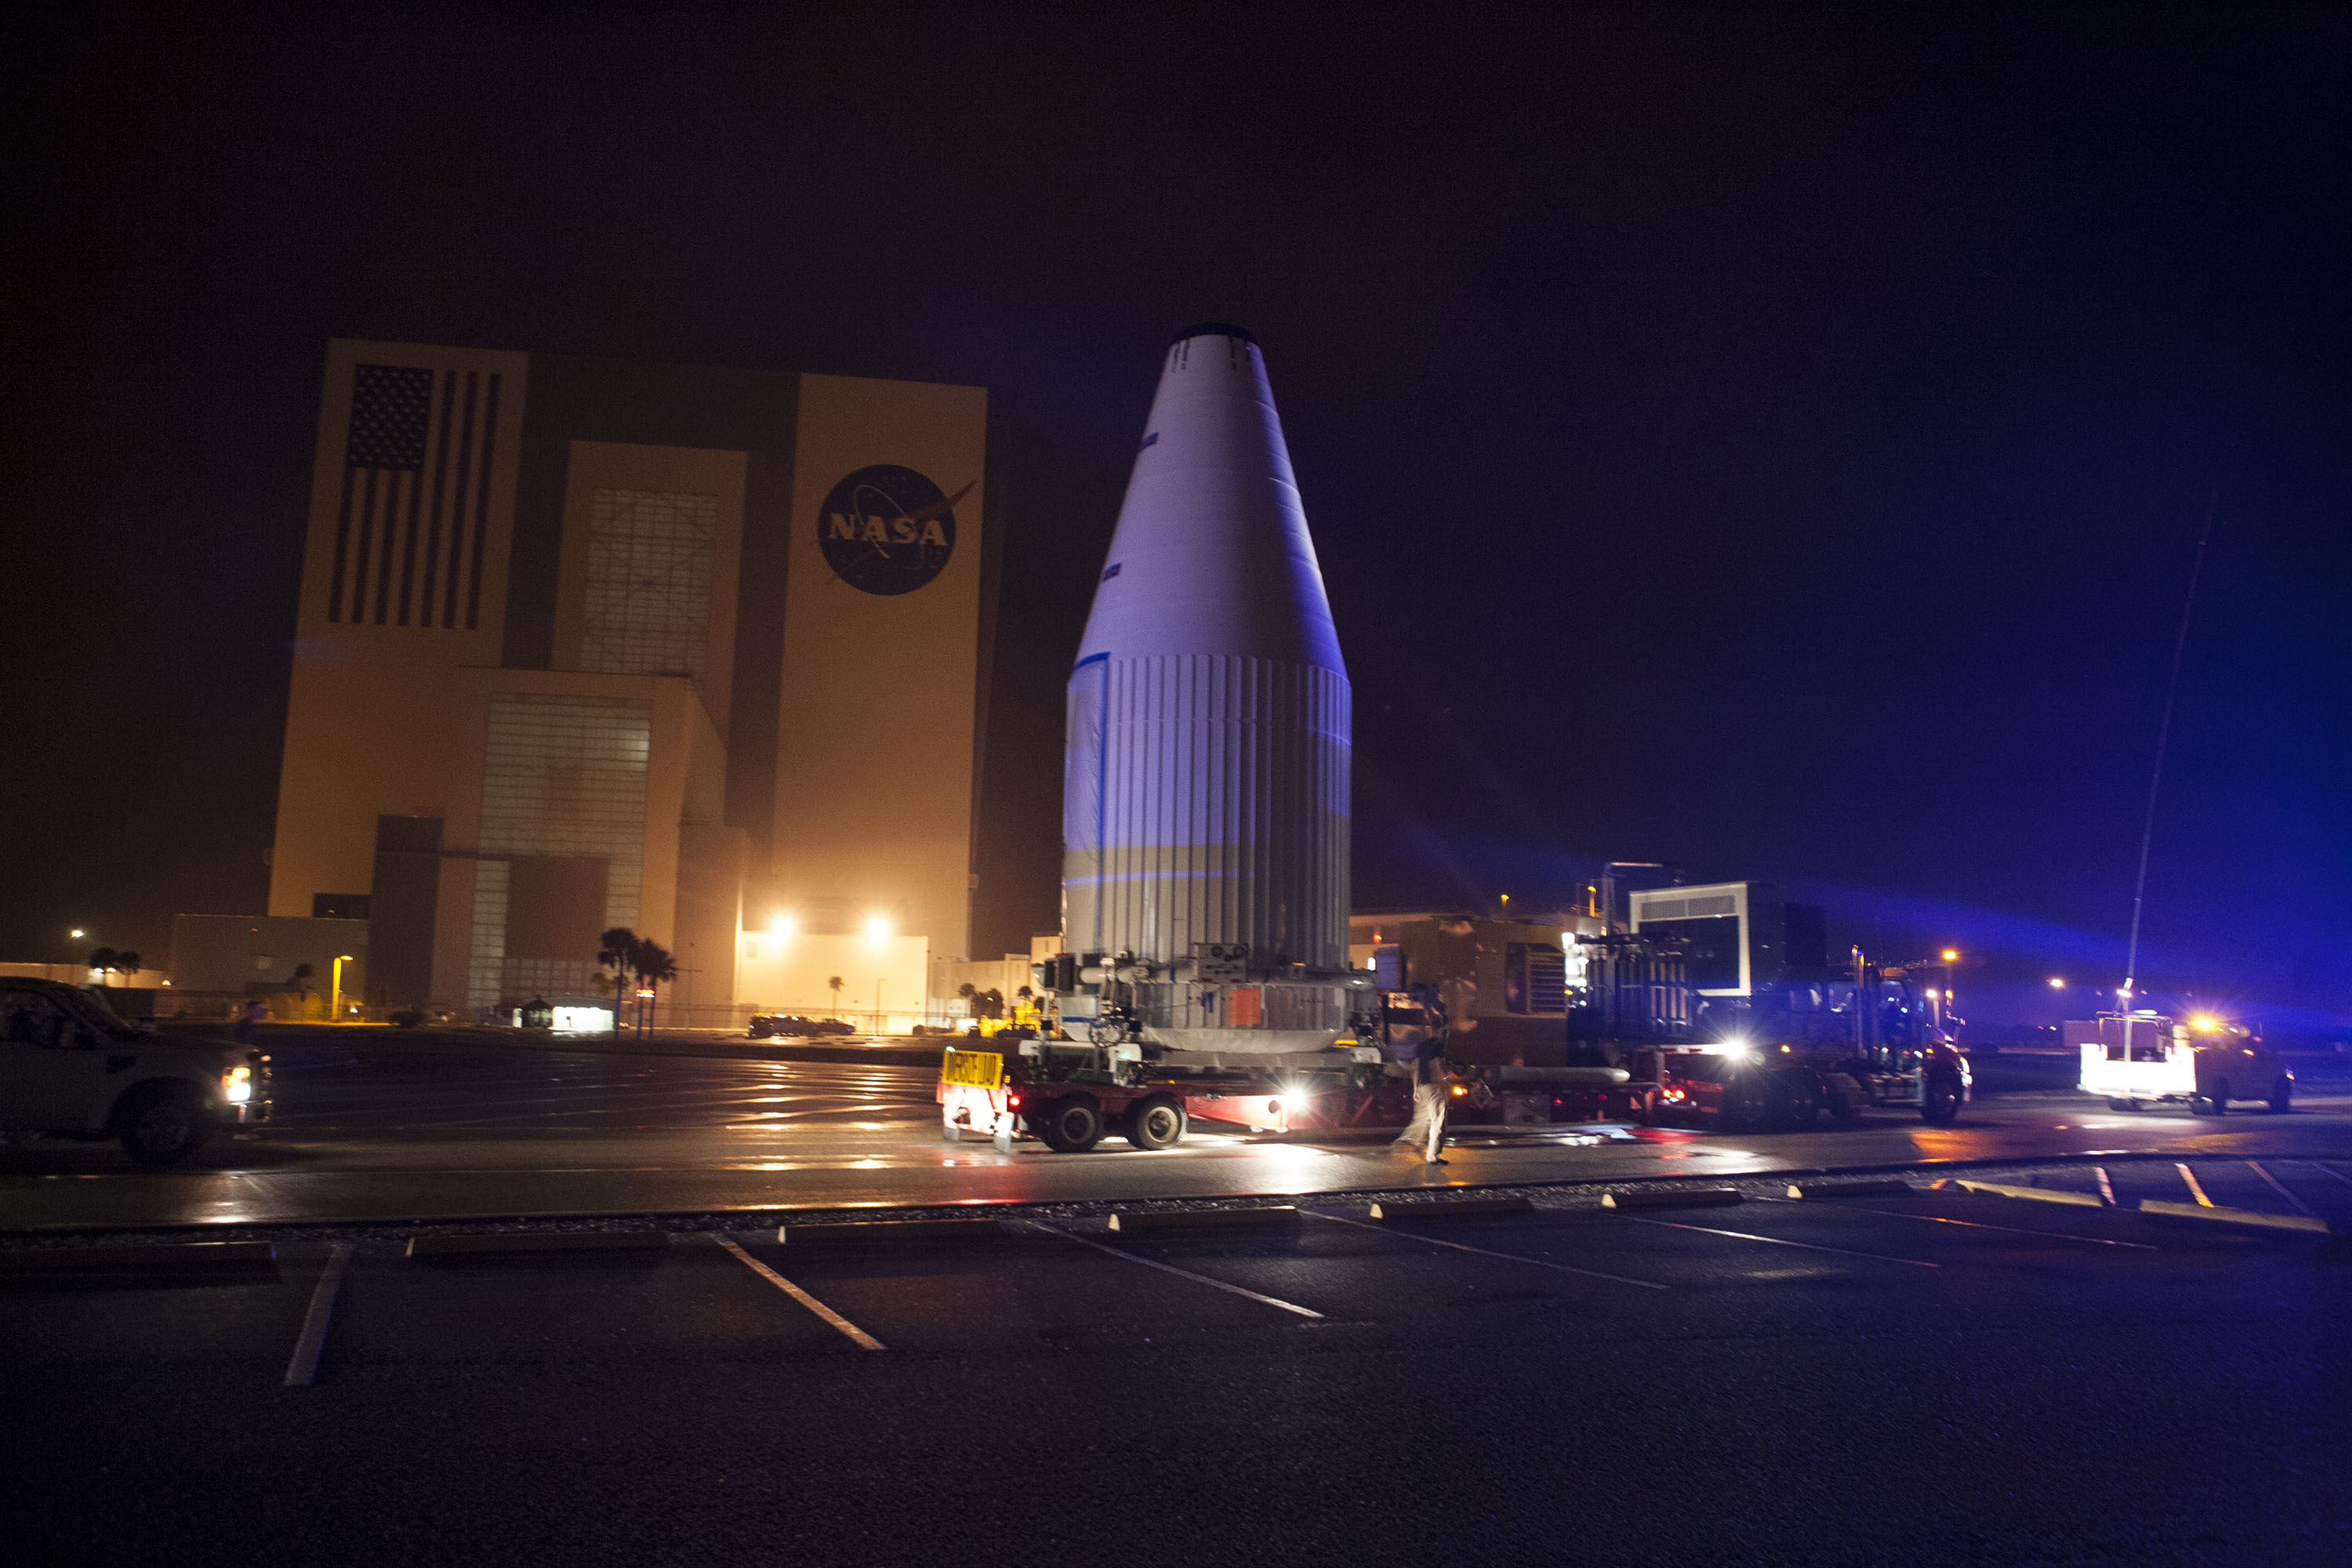 Tracking and Data Relay Satellite-K, enclosed in its payload fairing, passes through the Launch Complex 39 area and Vehicle Assembly Building at Kennedy Space Center as it travels from the Astrotech payload processing facility to its launch site.